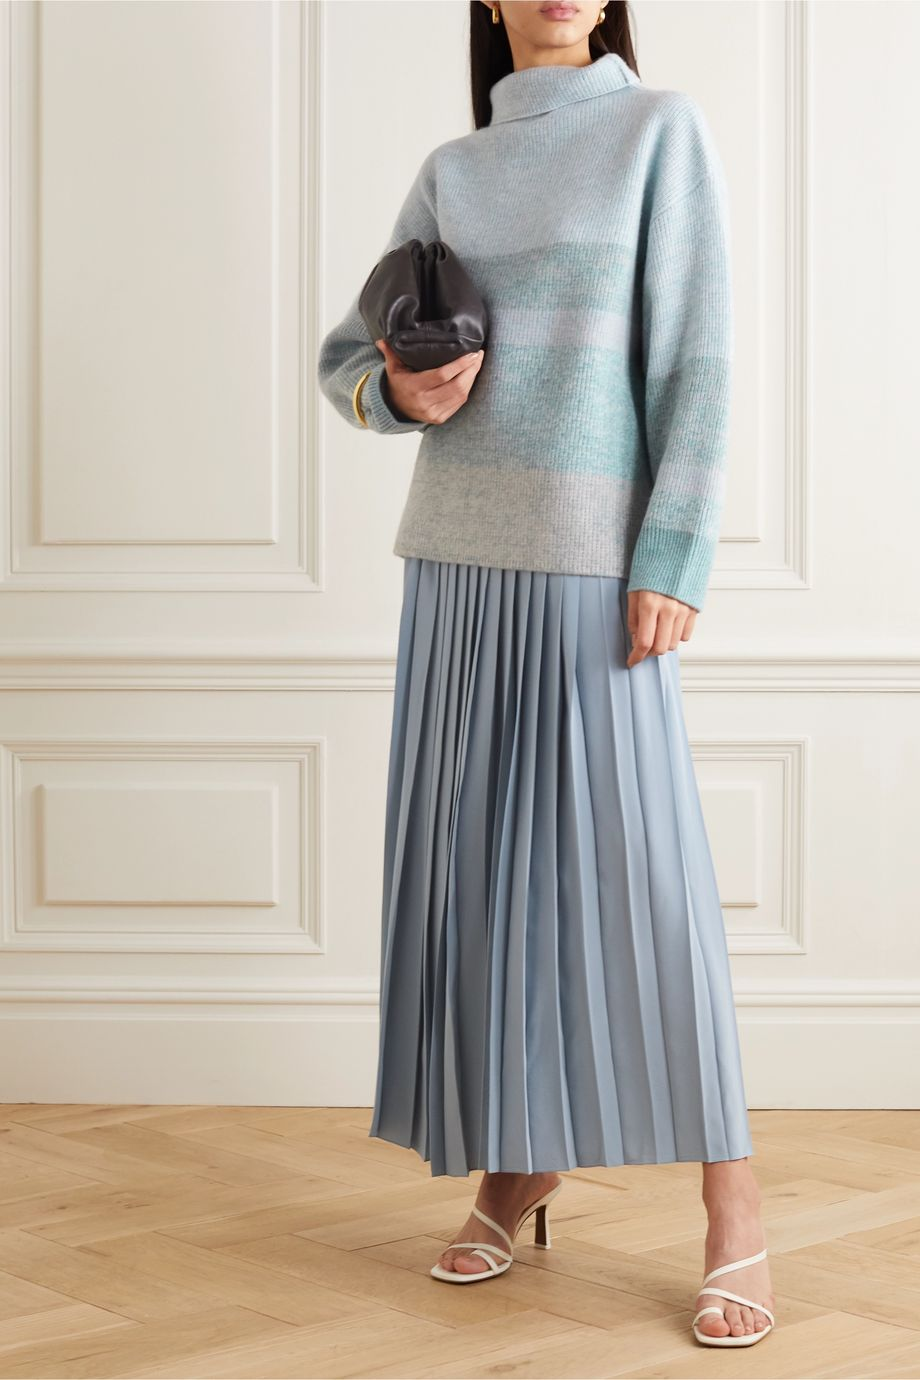 Le Kasha Kinsale striped cashmere turtleneck sweater